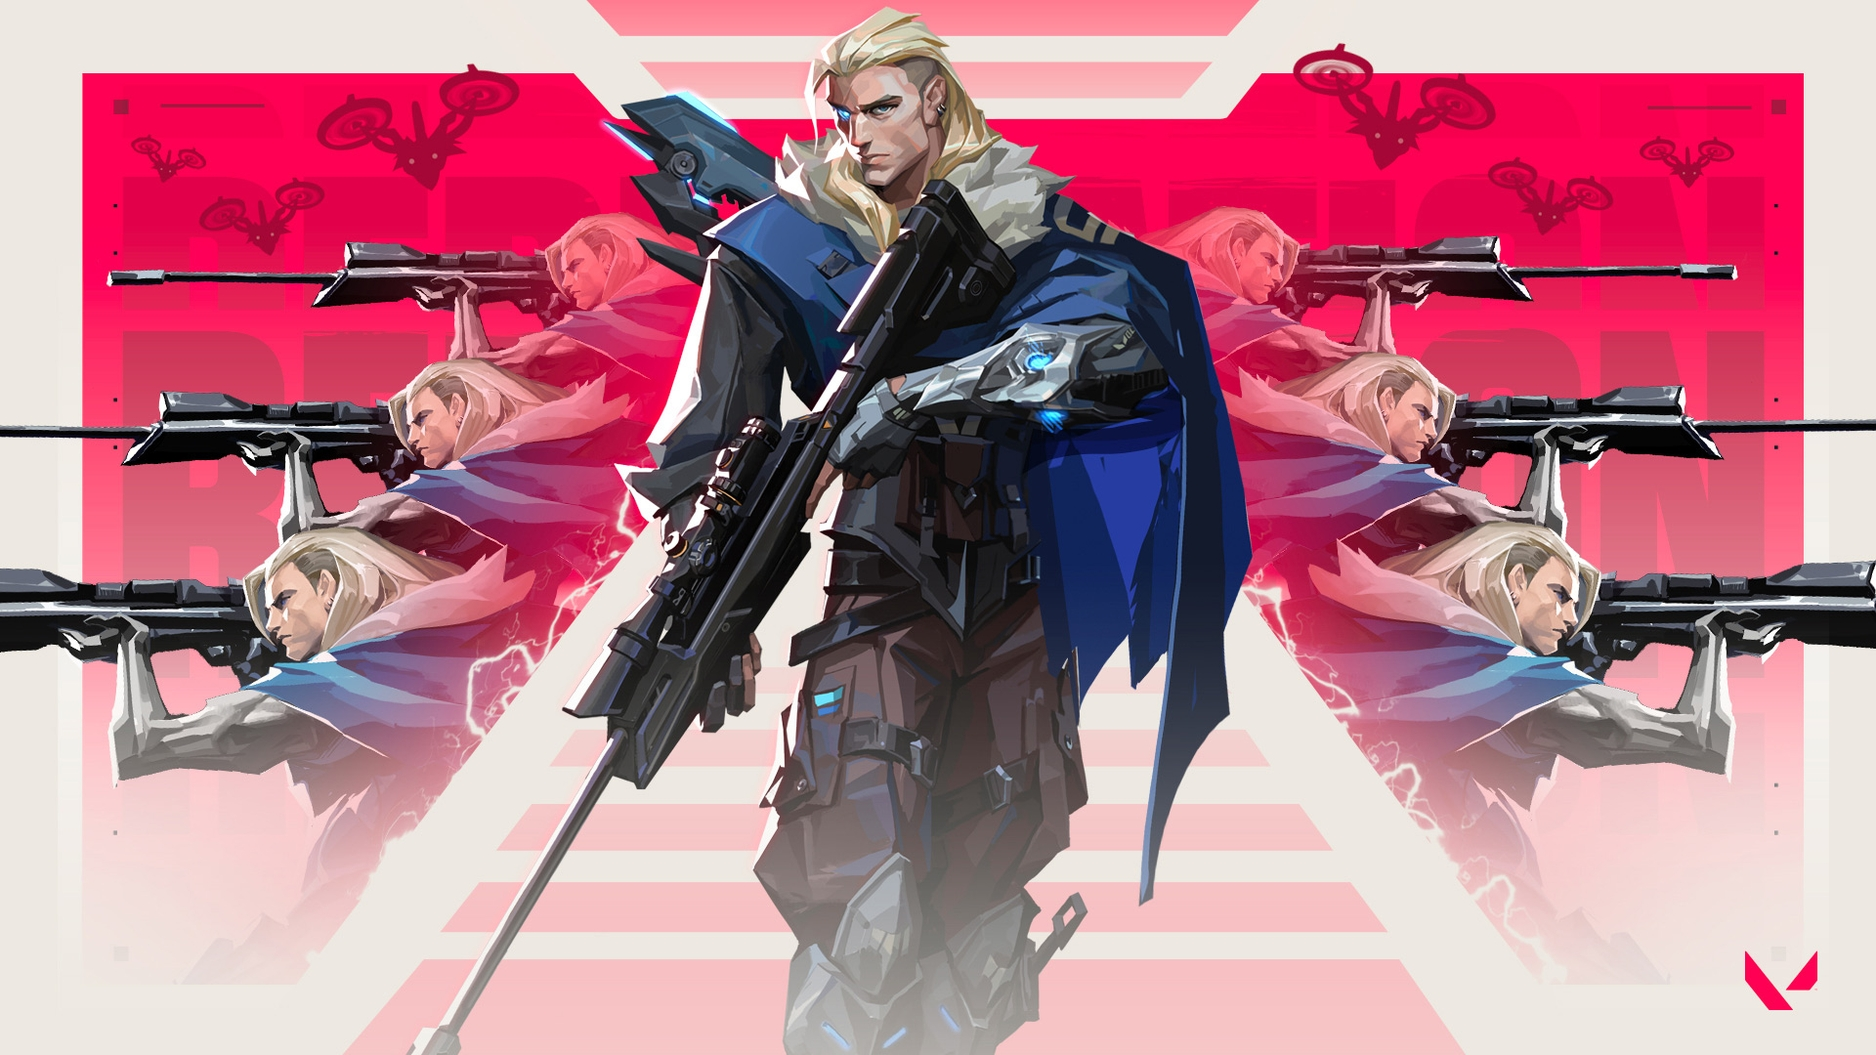 VALORANT: Riot Games' competitive 5v5 character-based tactical shooter